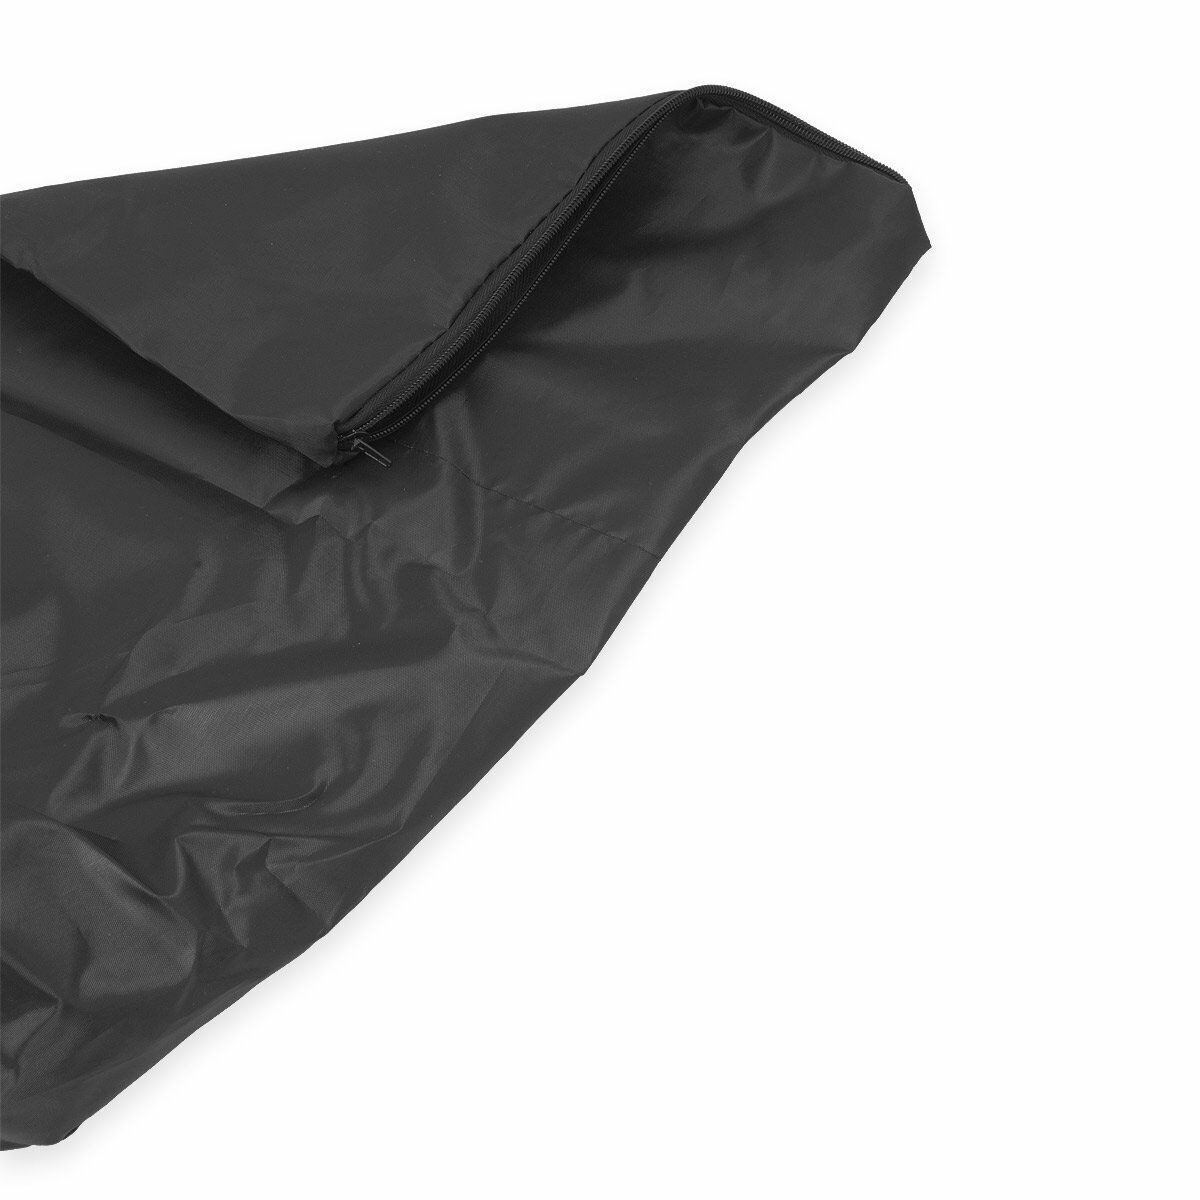 New Universal Fitting Reusable Black Vacuum Bag Hoover Cleaner Dust Bags Vacuum